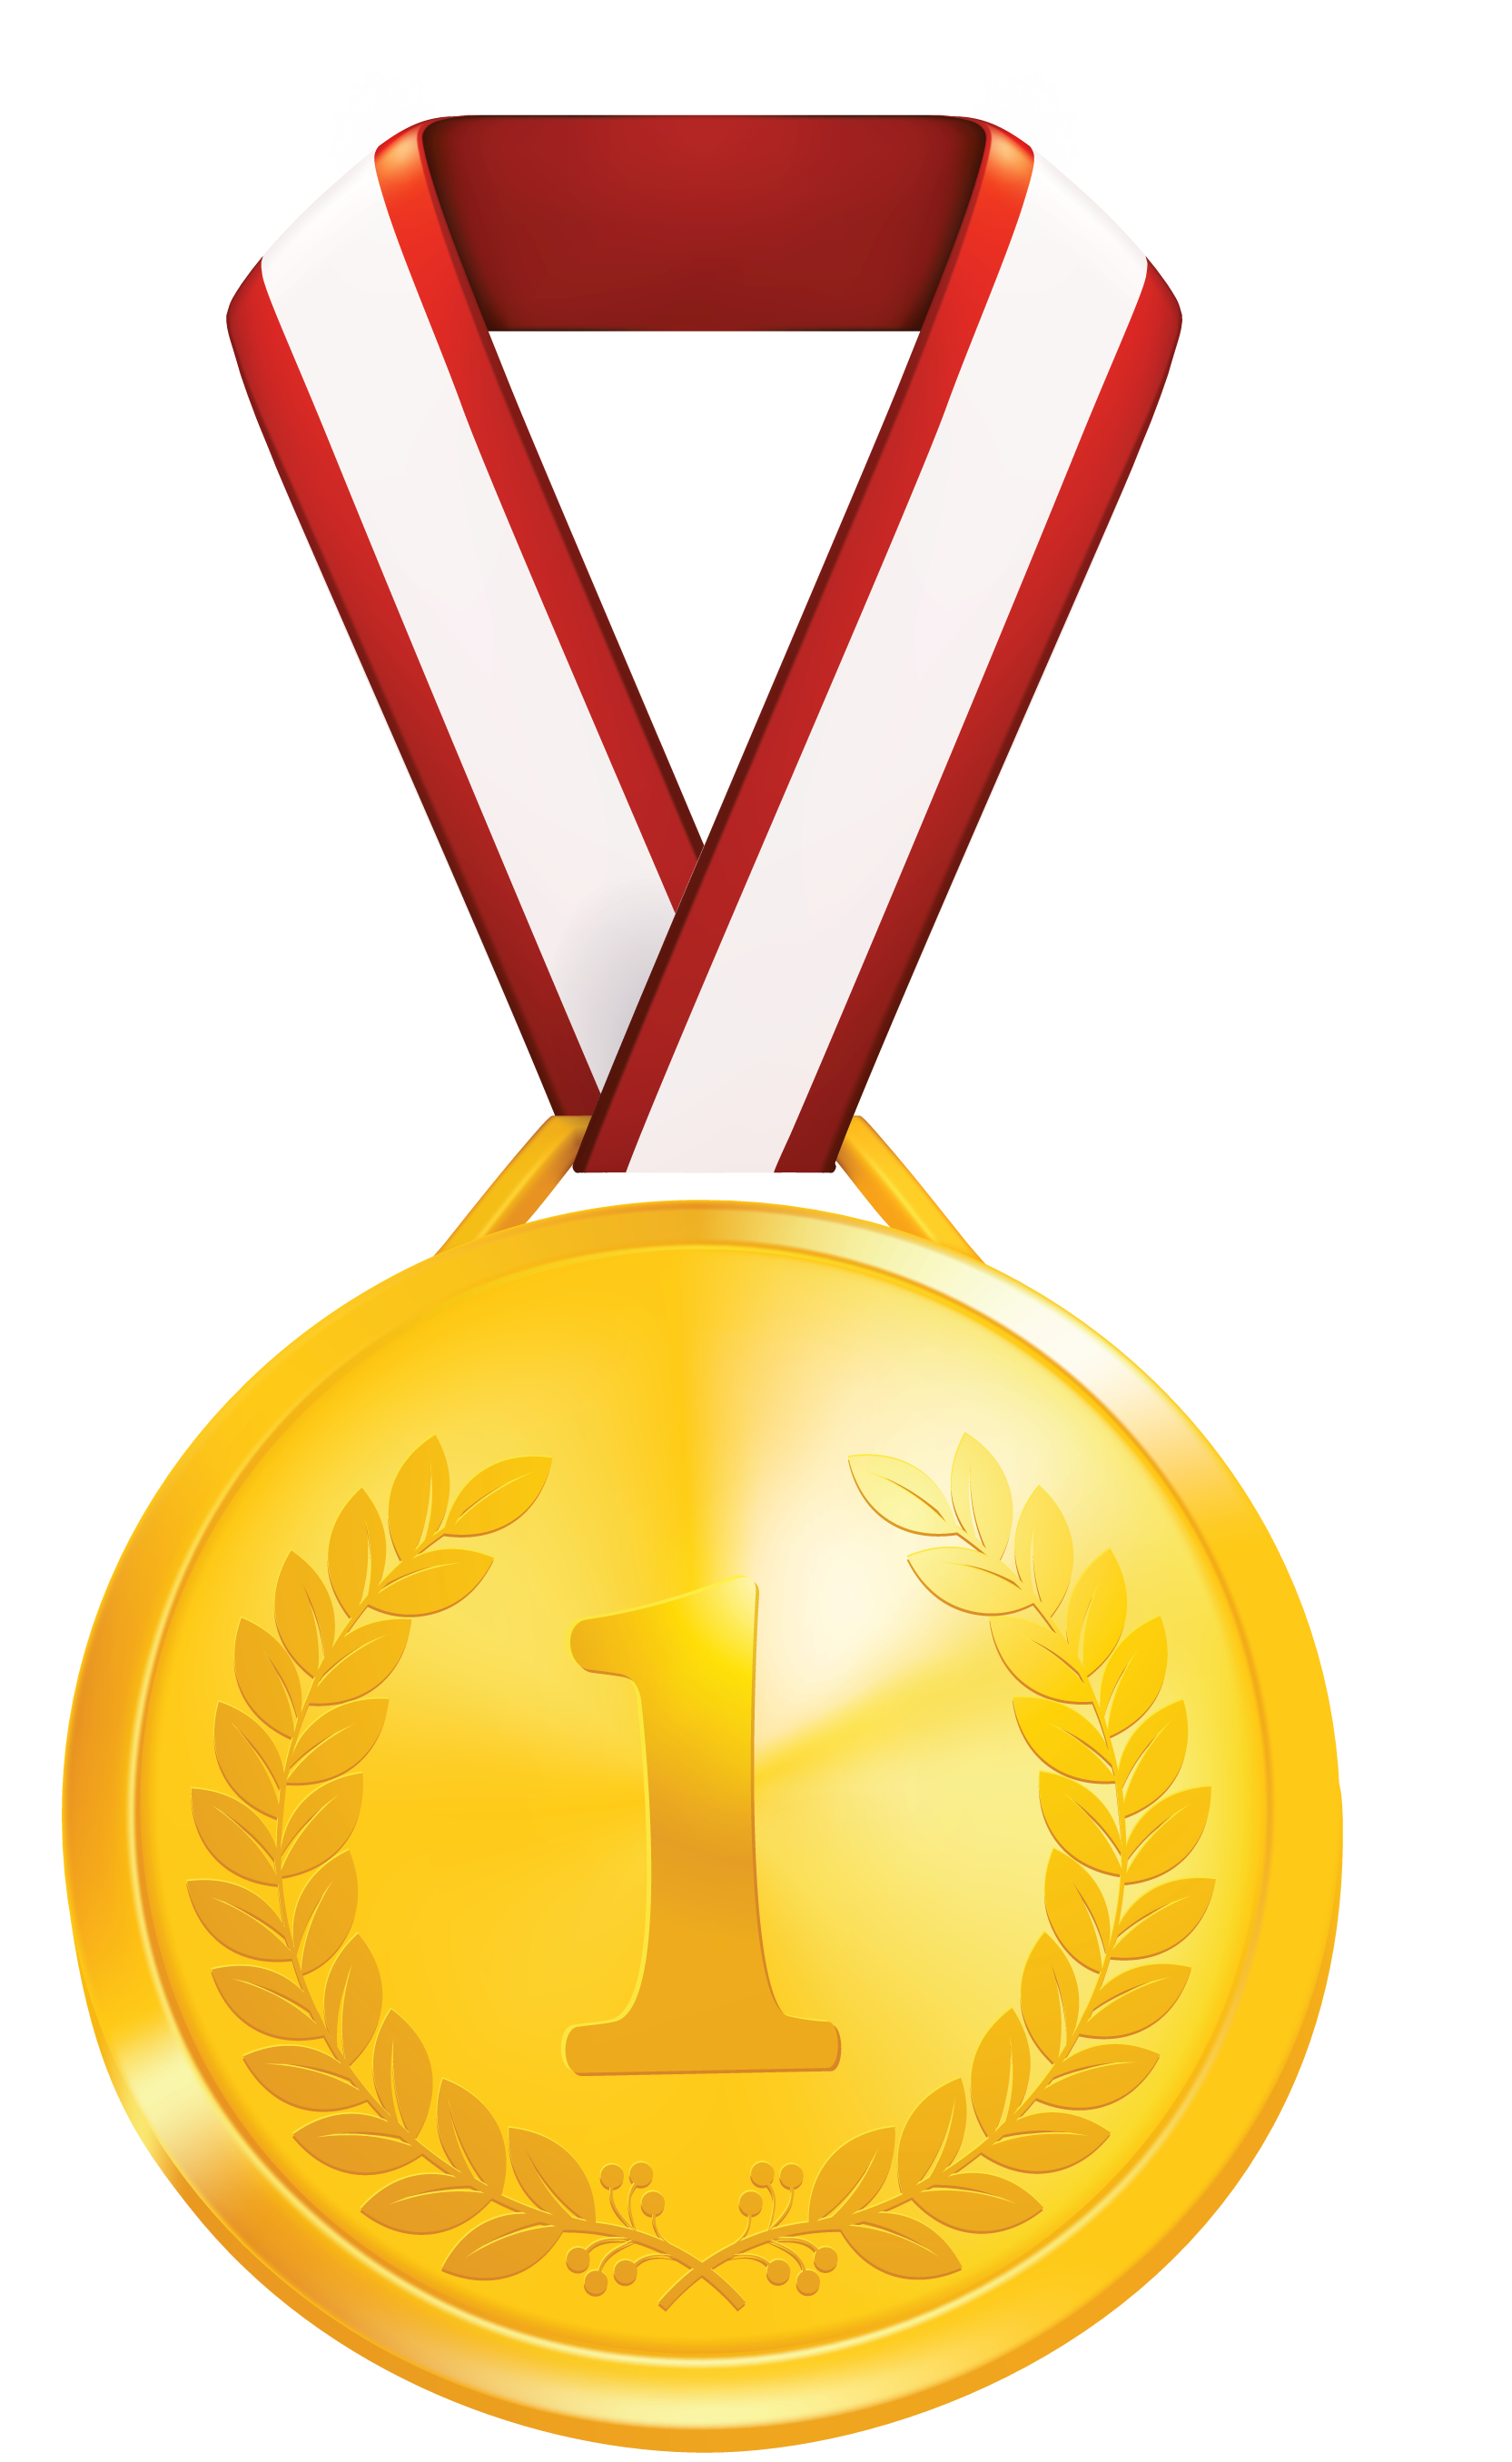 Medal clip art clipart images gallery for free download.